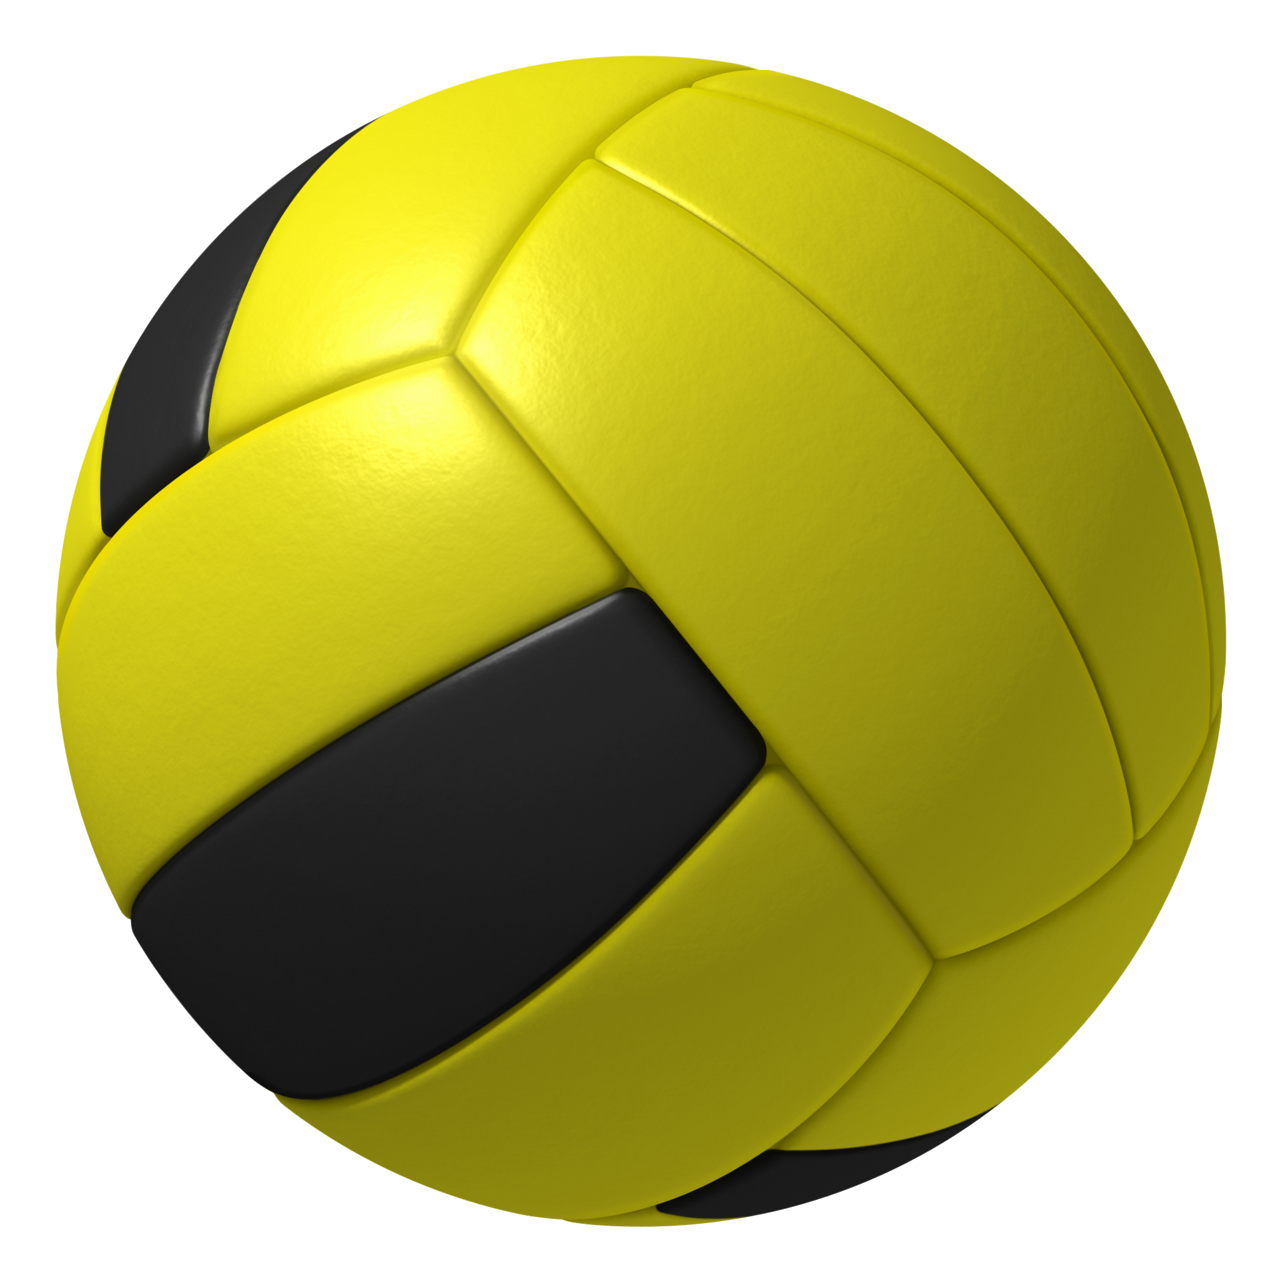 Png ball. Images transparent free download